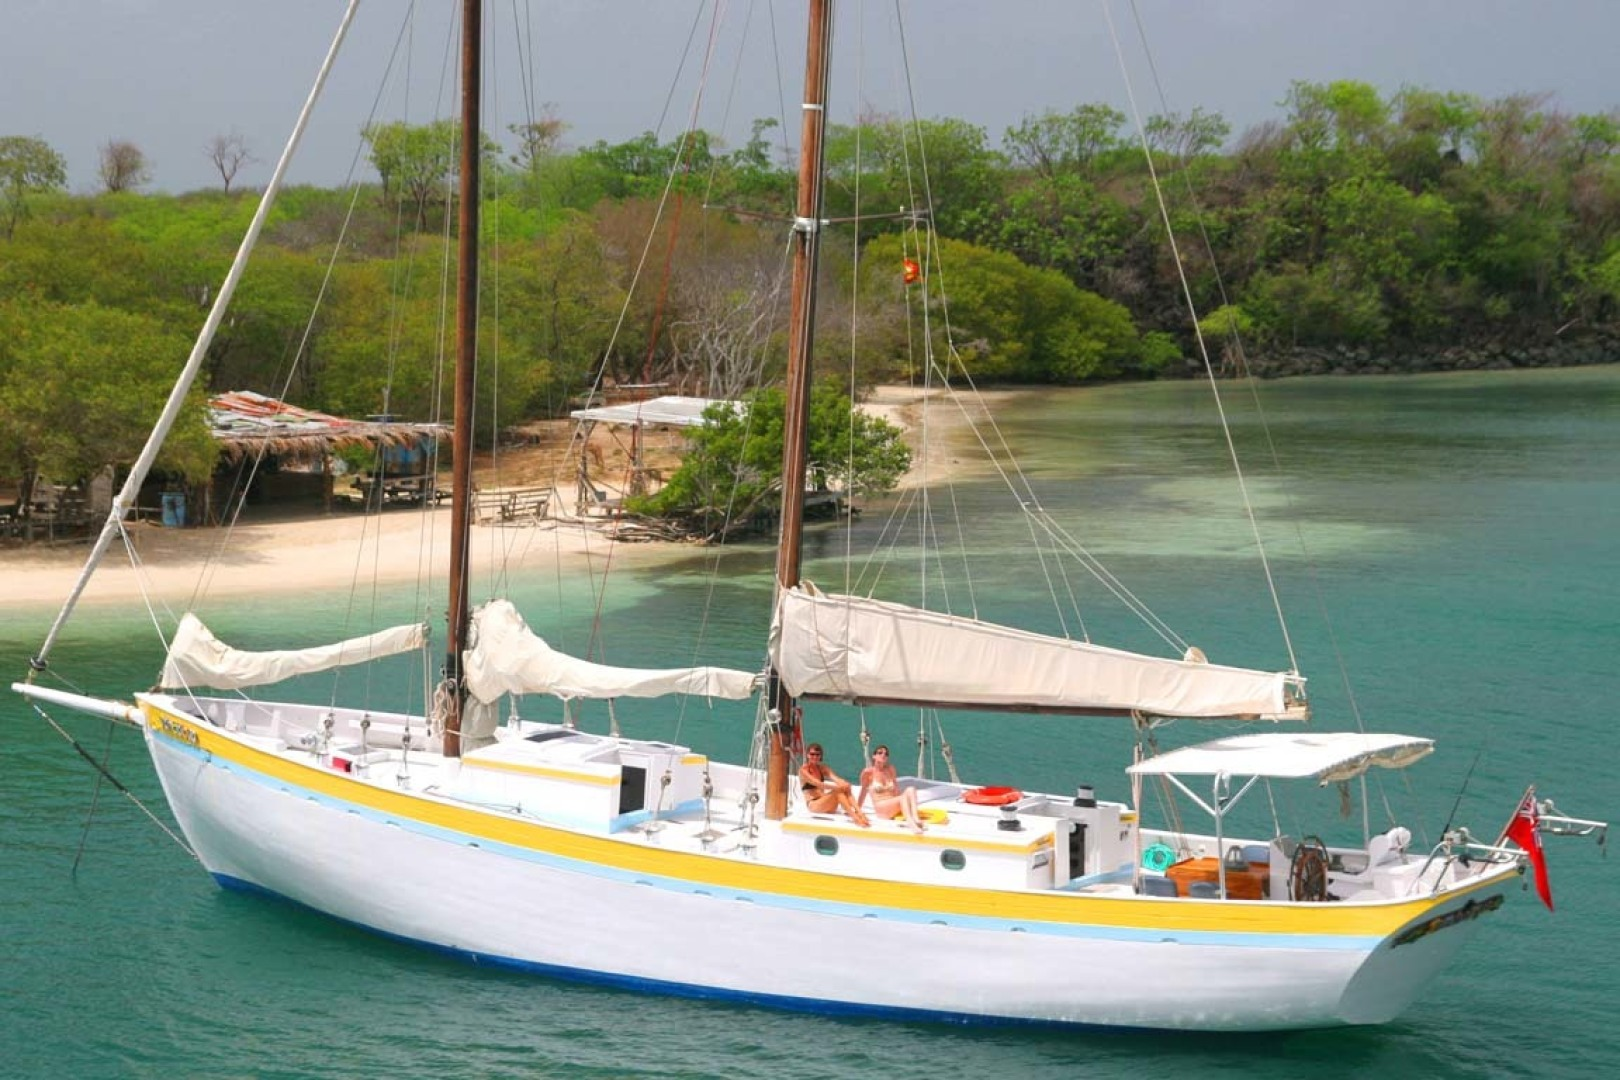 Custom-Schooner 2002-Jambalaya Saint Georges-Grenada-At Anchor-1596026 | Thumbnail